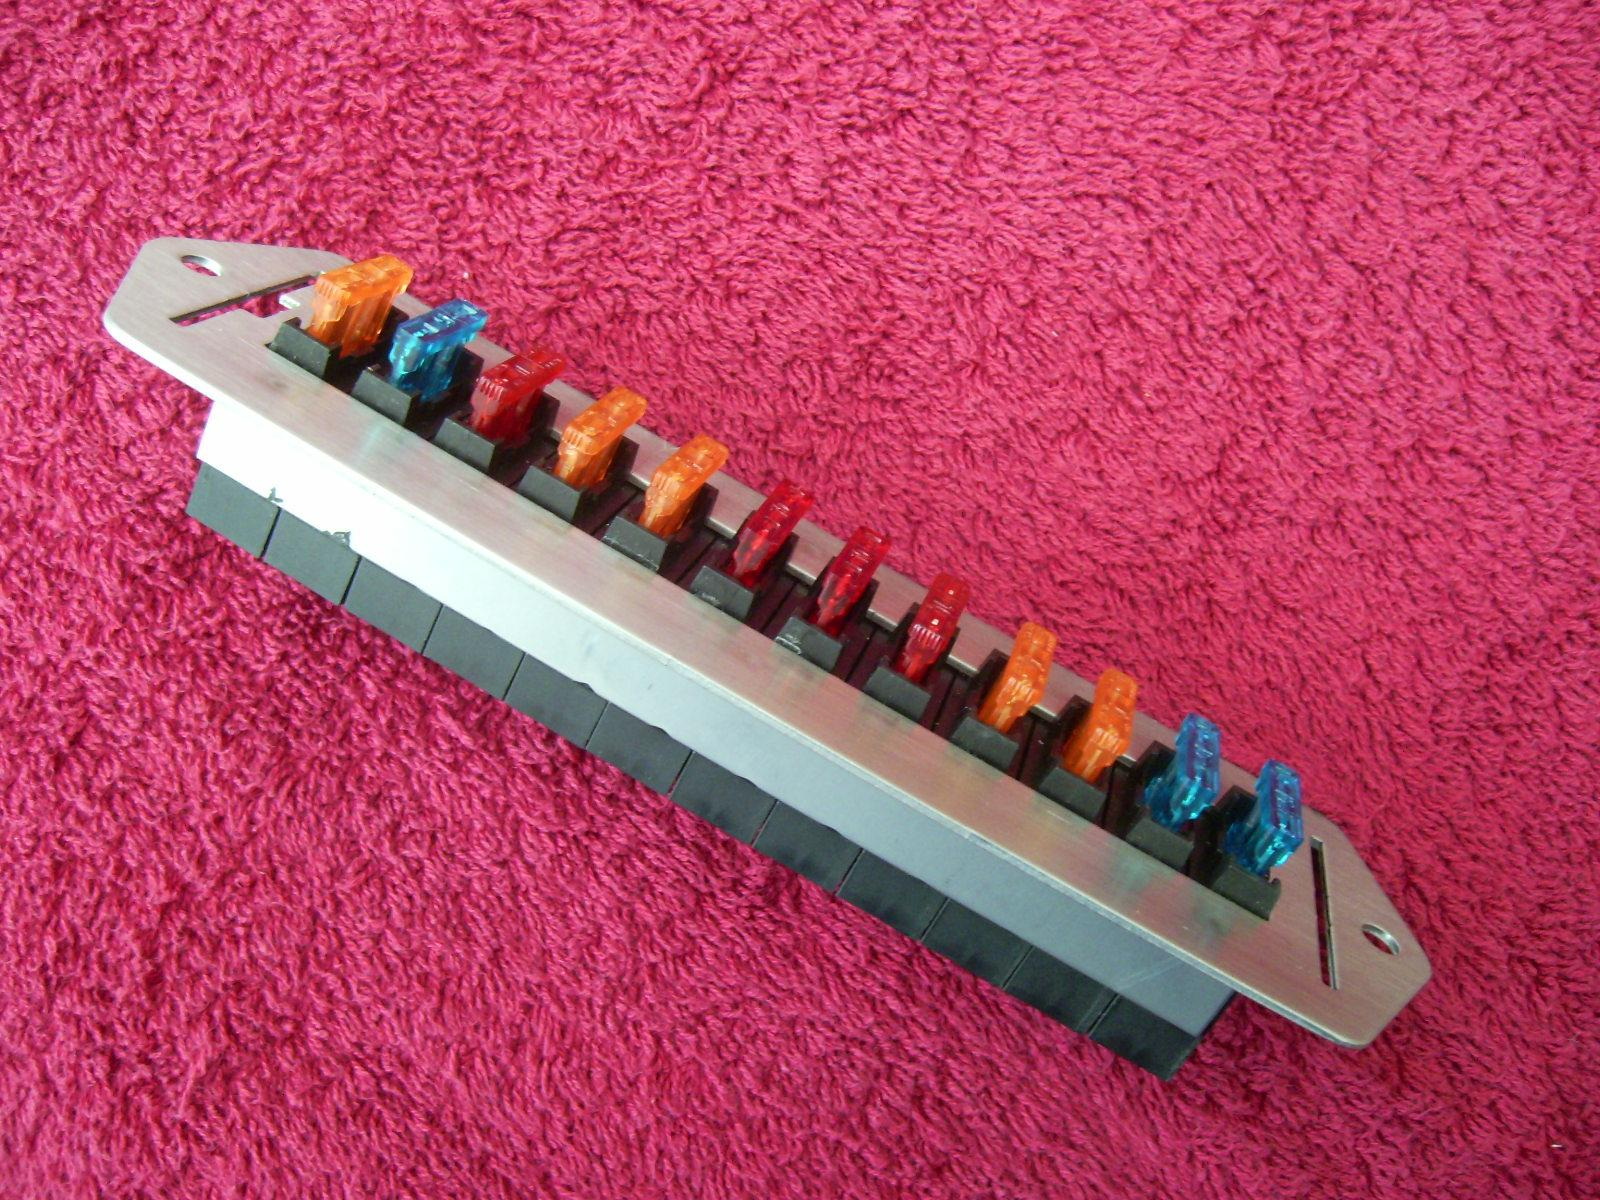 Stagweber Upgrade Fuse Box Blade